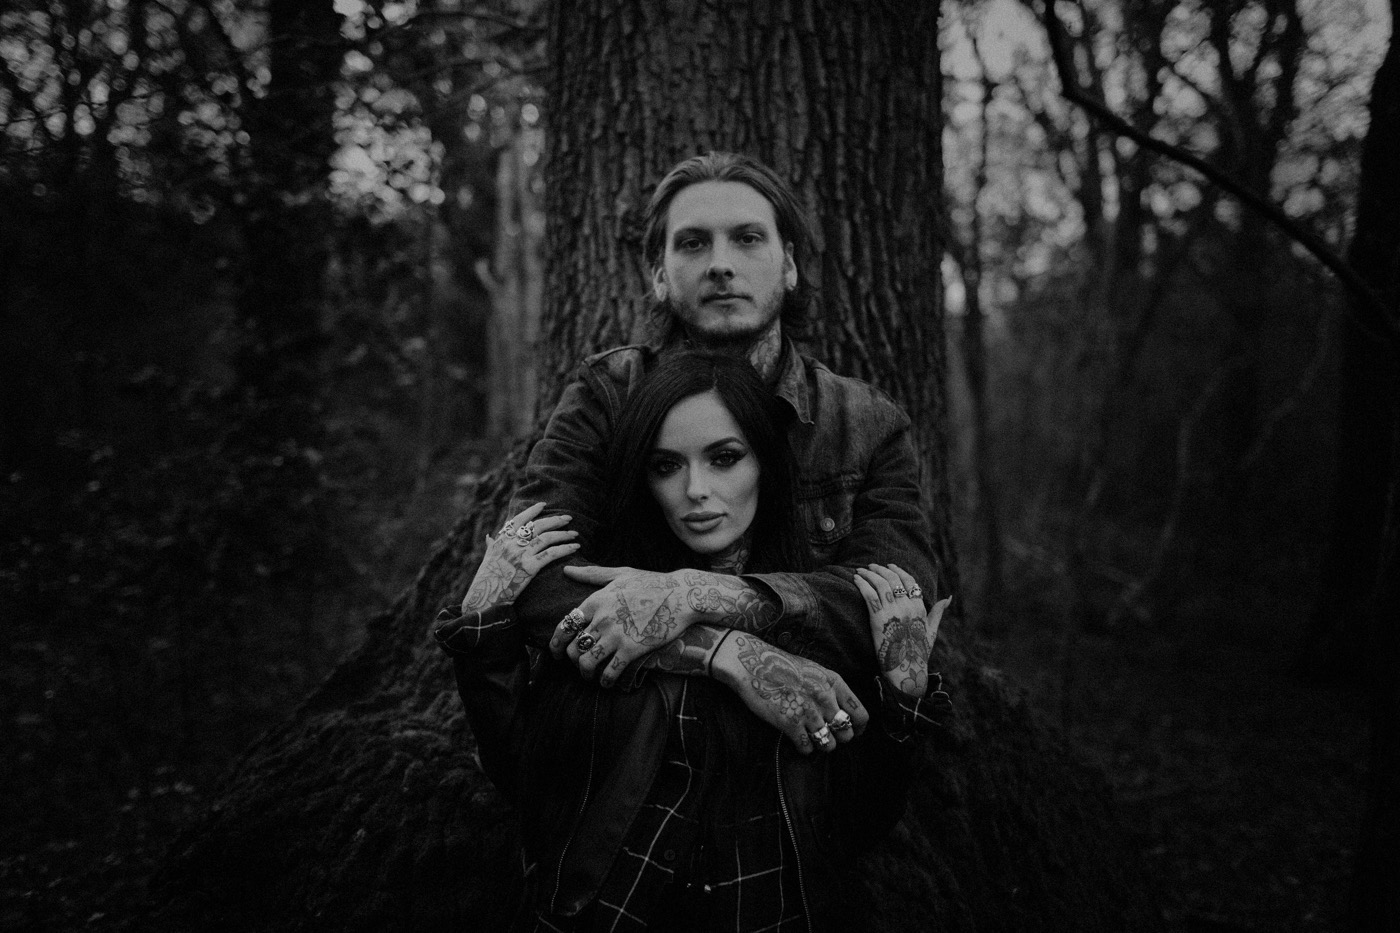 engement-photography-and-natural-couple-photoshoot-london-27.JPG